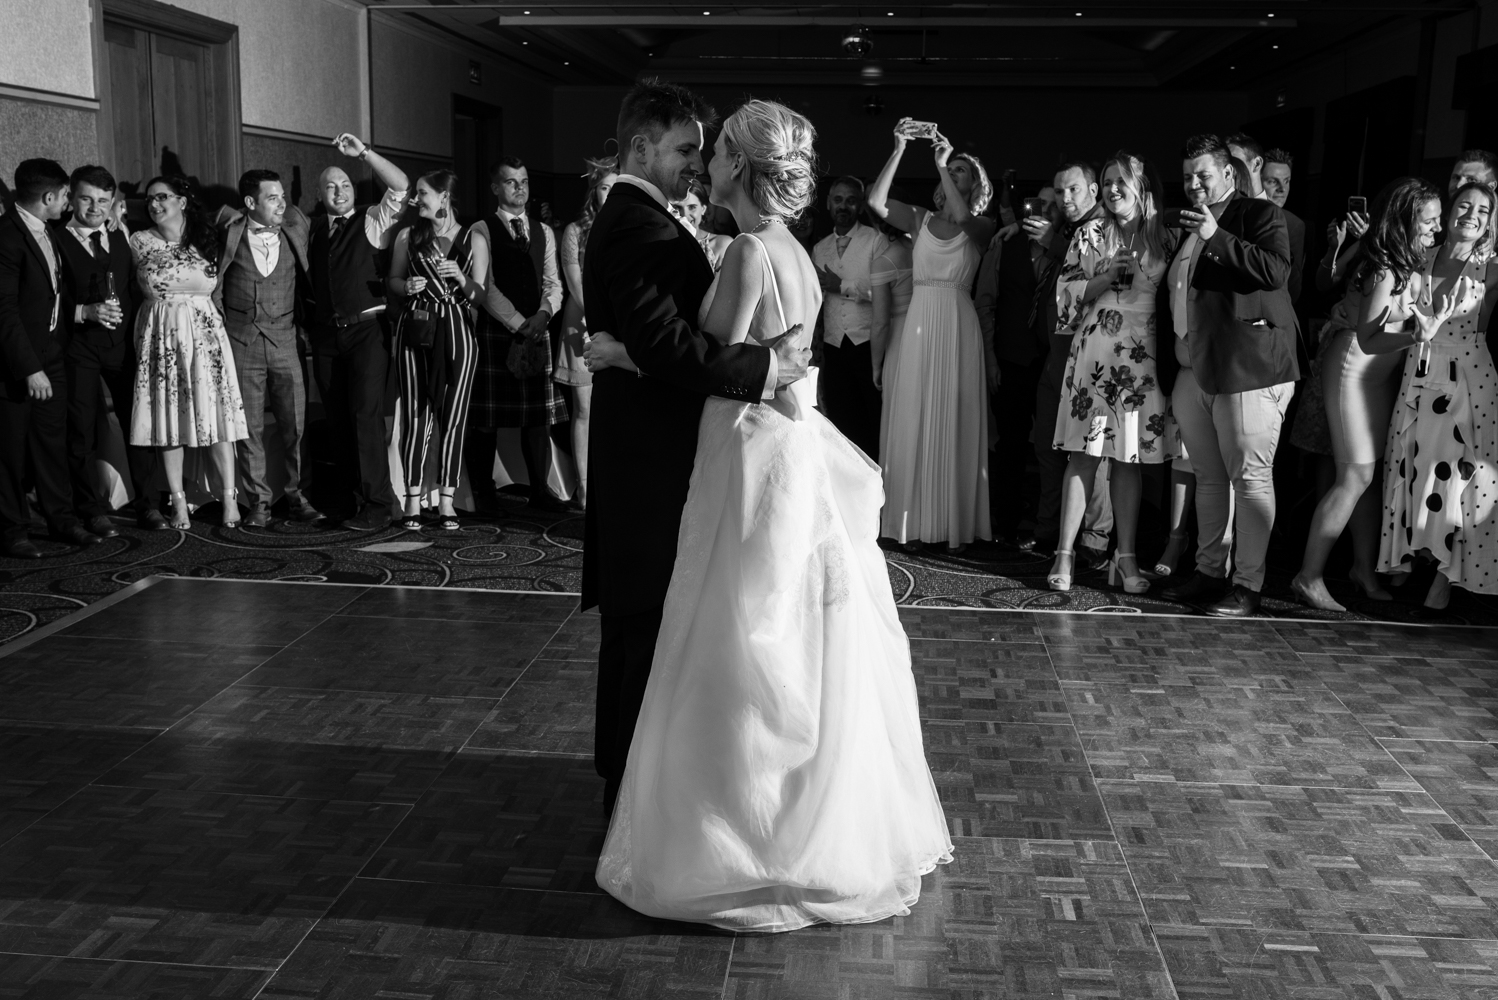 A black and white photo of the bride and groom during the first dance